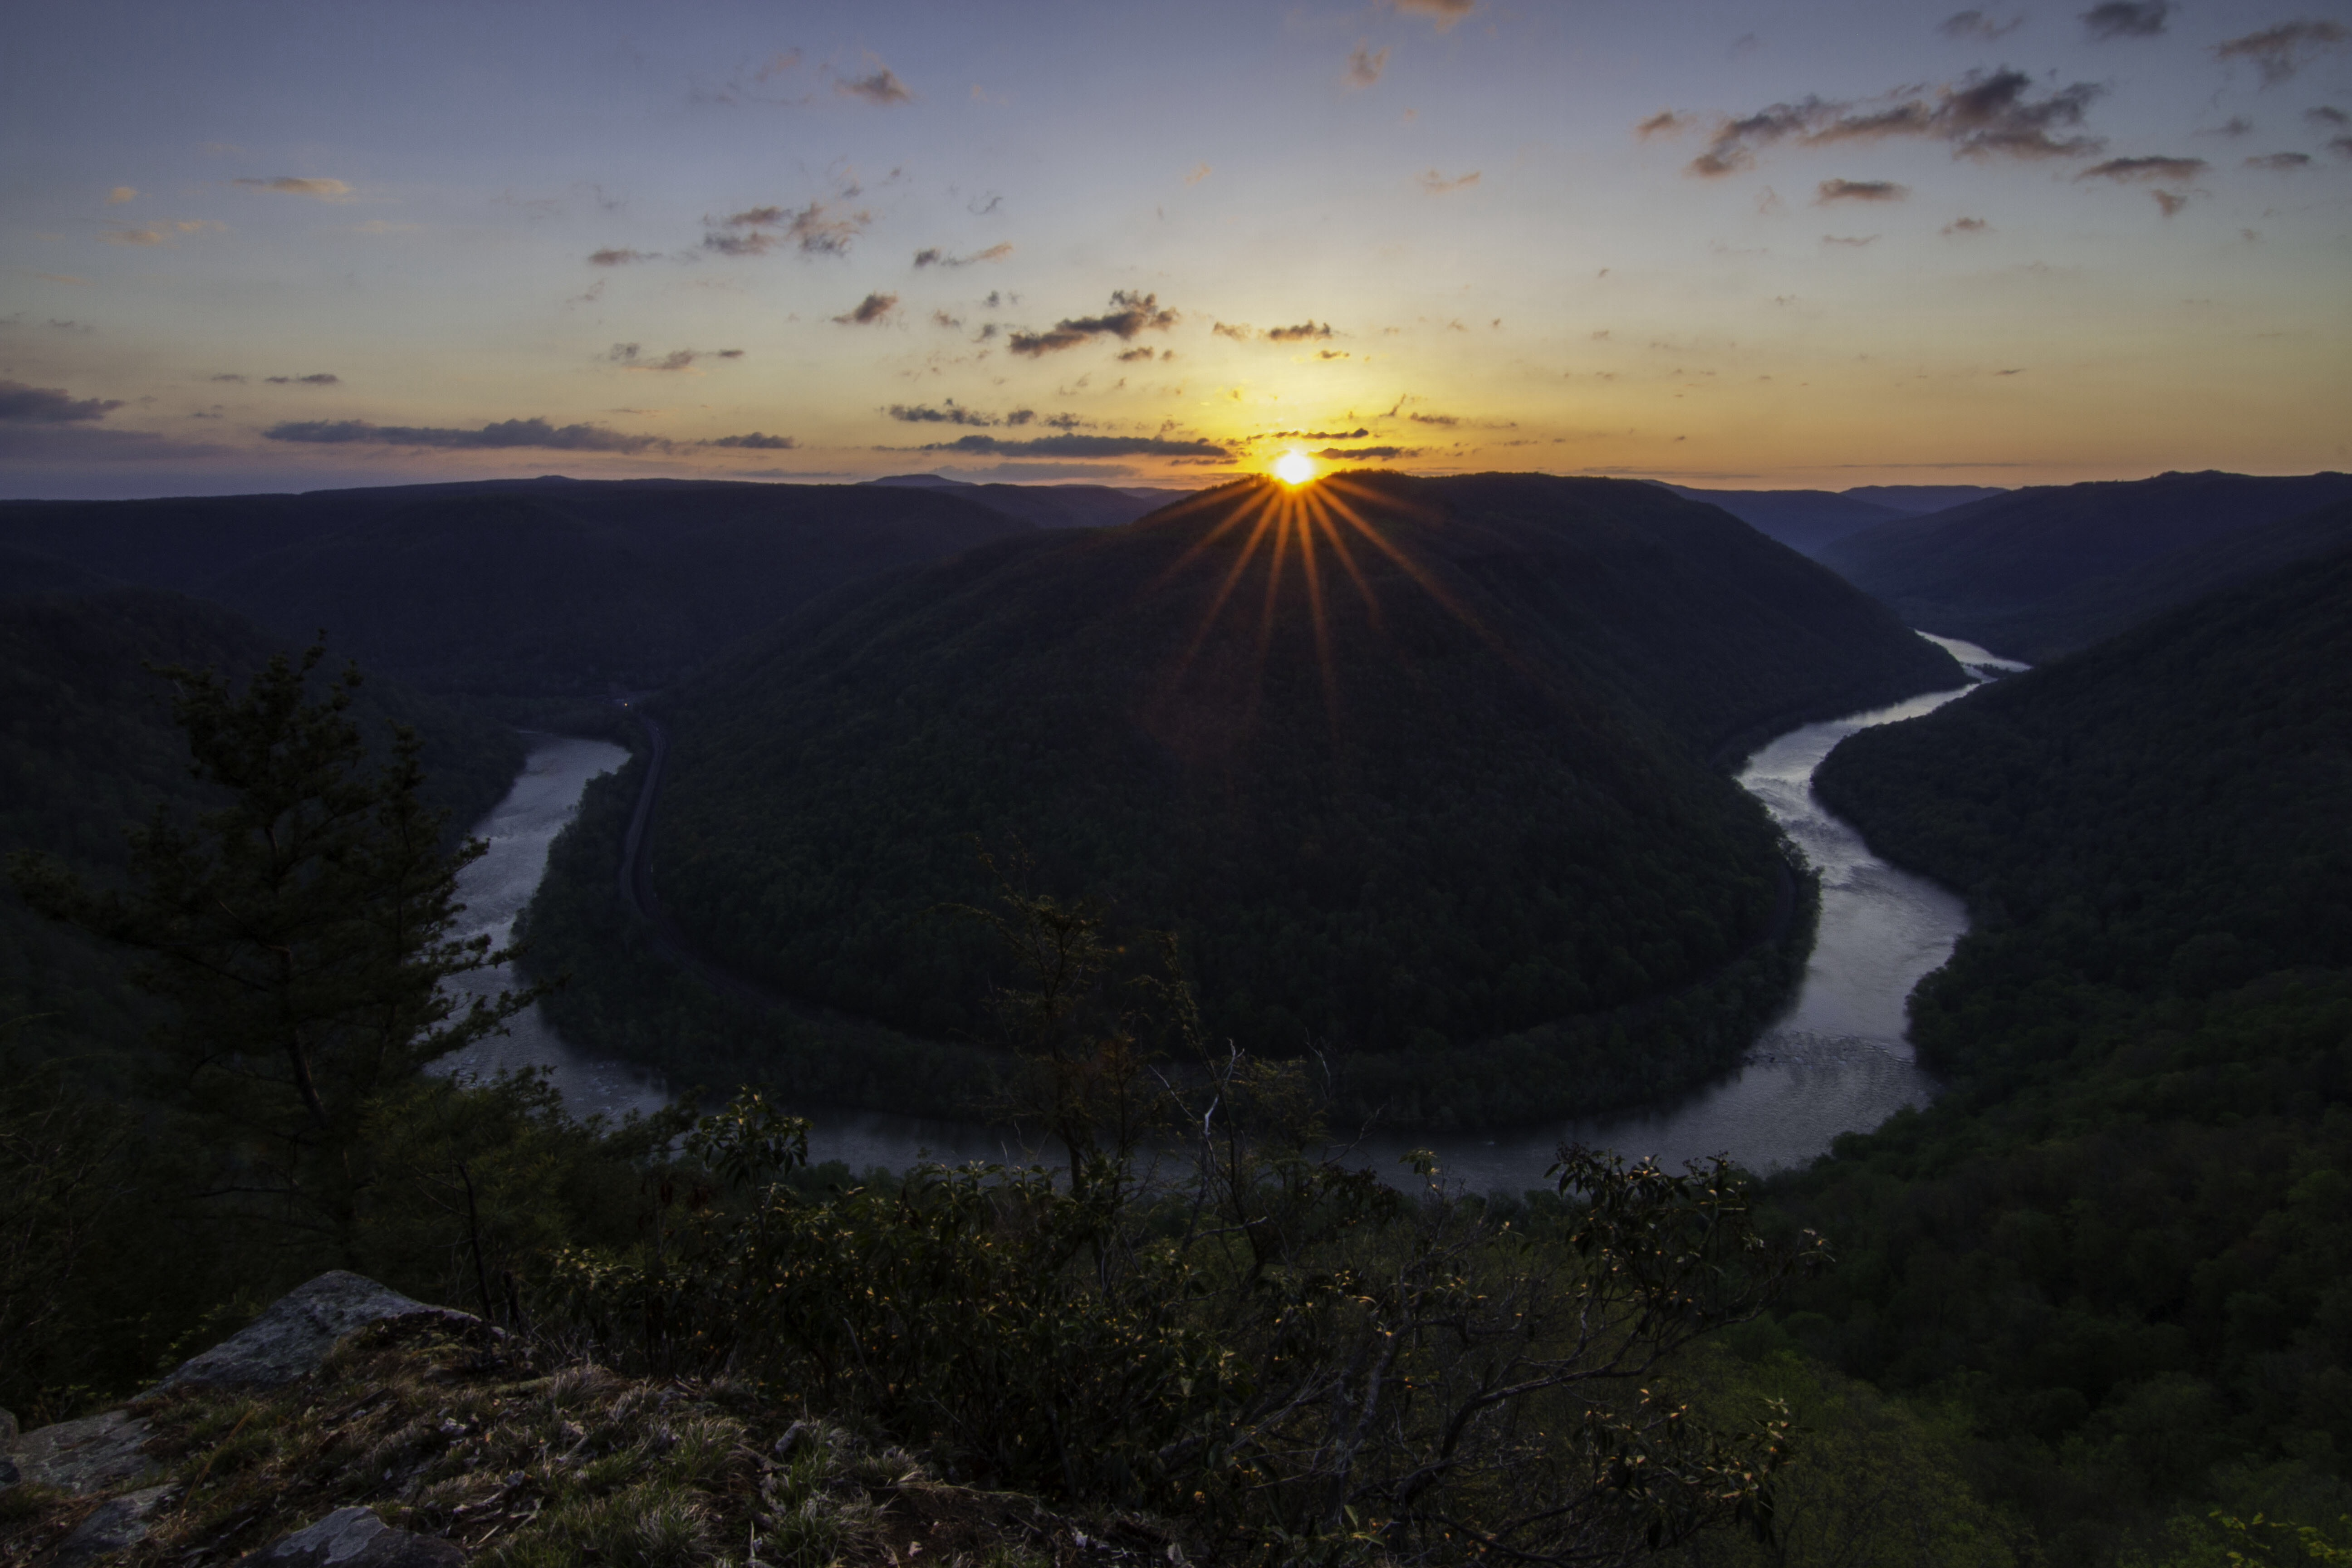 Grandview National Park | First Southern Baptist Church of Grandview